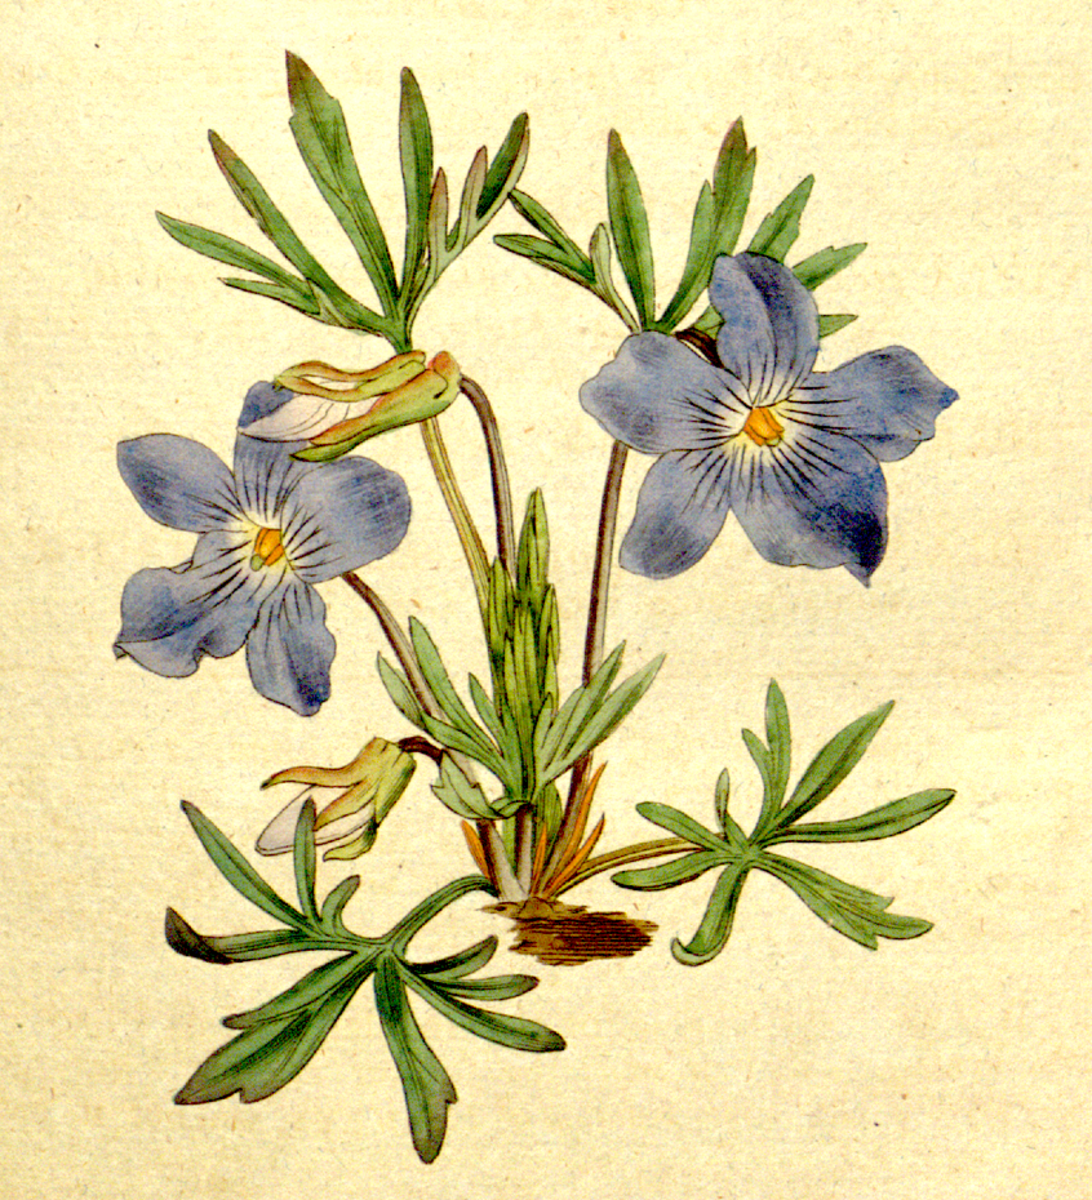 Botanical illustration of a viola